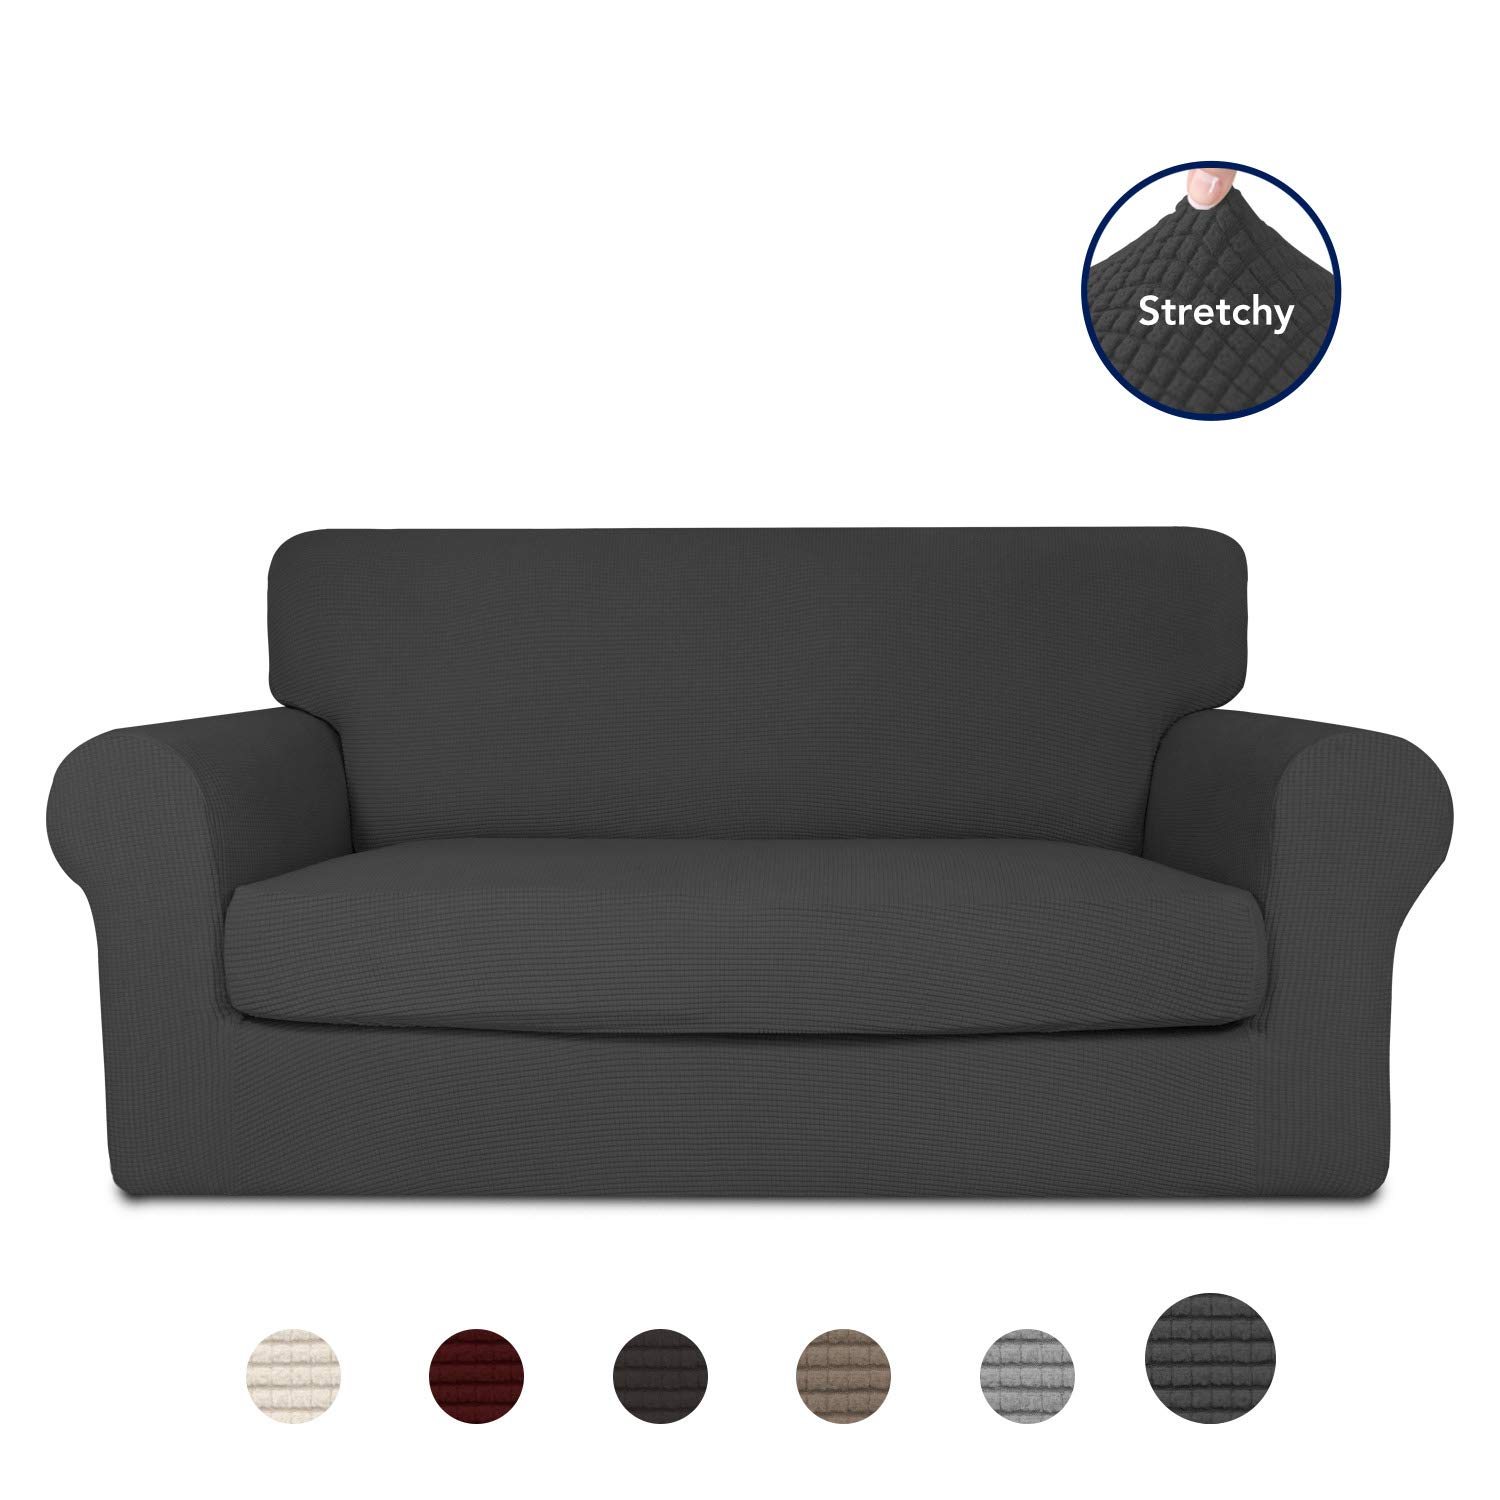 PureFit 2-Piece Stretch Slipcover for 2 Cushion Couch - Spandex Jacquard non-Slip Soft Fitted Sofa Couch Cover Washable Furniture Protector with Anti-Skid Elastic Bottom for Kids (Loveseat, Dark Gray) by PureFit